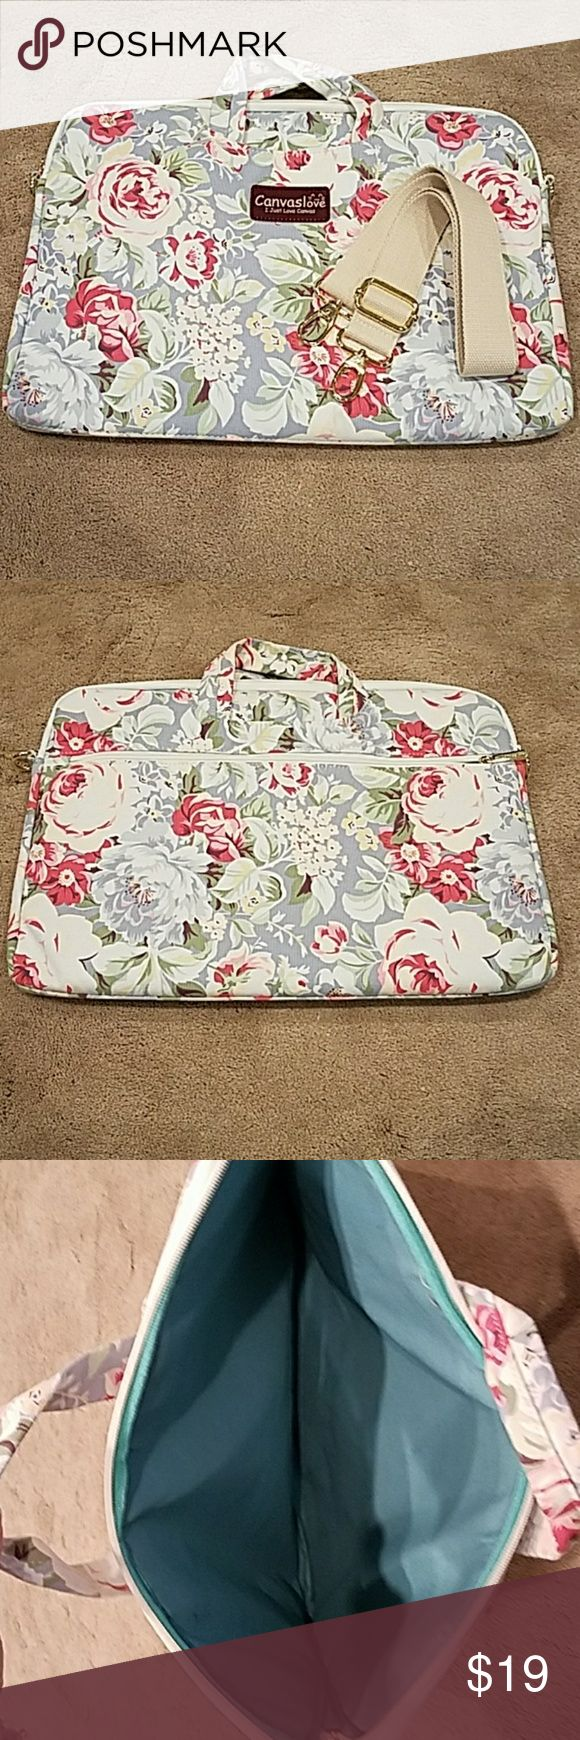 Laptop Carry Case Brand New floral print canvas carrycase for laptop by Canvaslove. Pinks/grays/green/blues Large outer zippered pocket with multiple compartments inside. Removable/Adjustable shoulder strap canvaslove Bags Laptop Bags